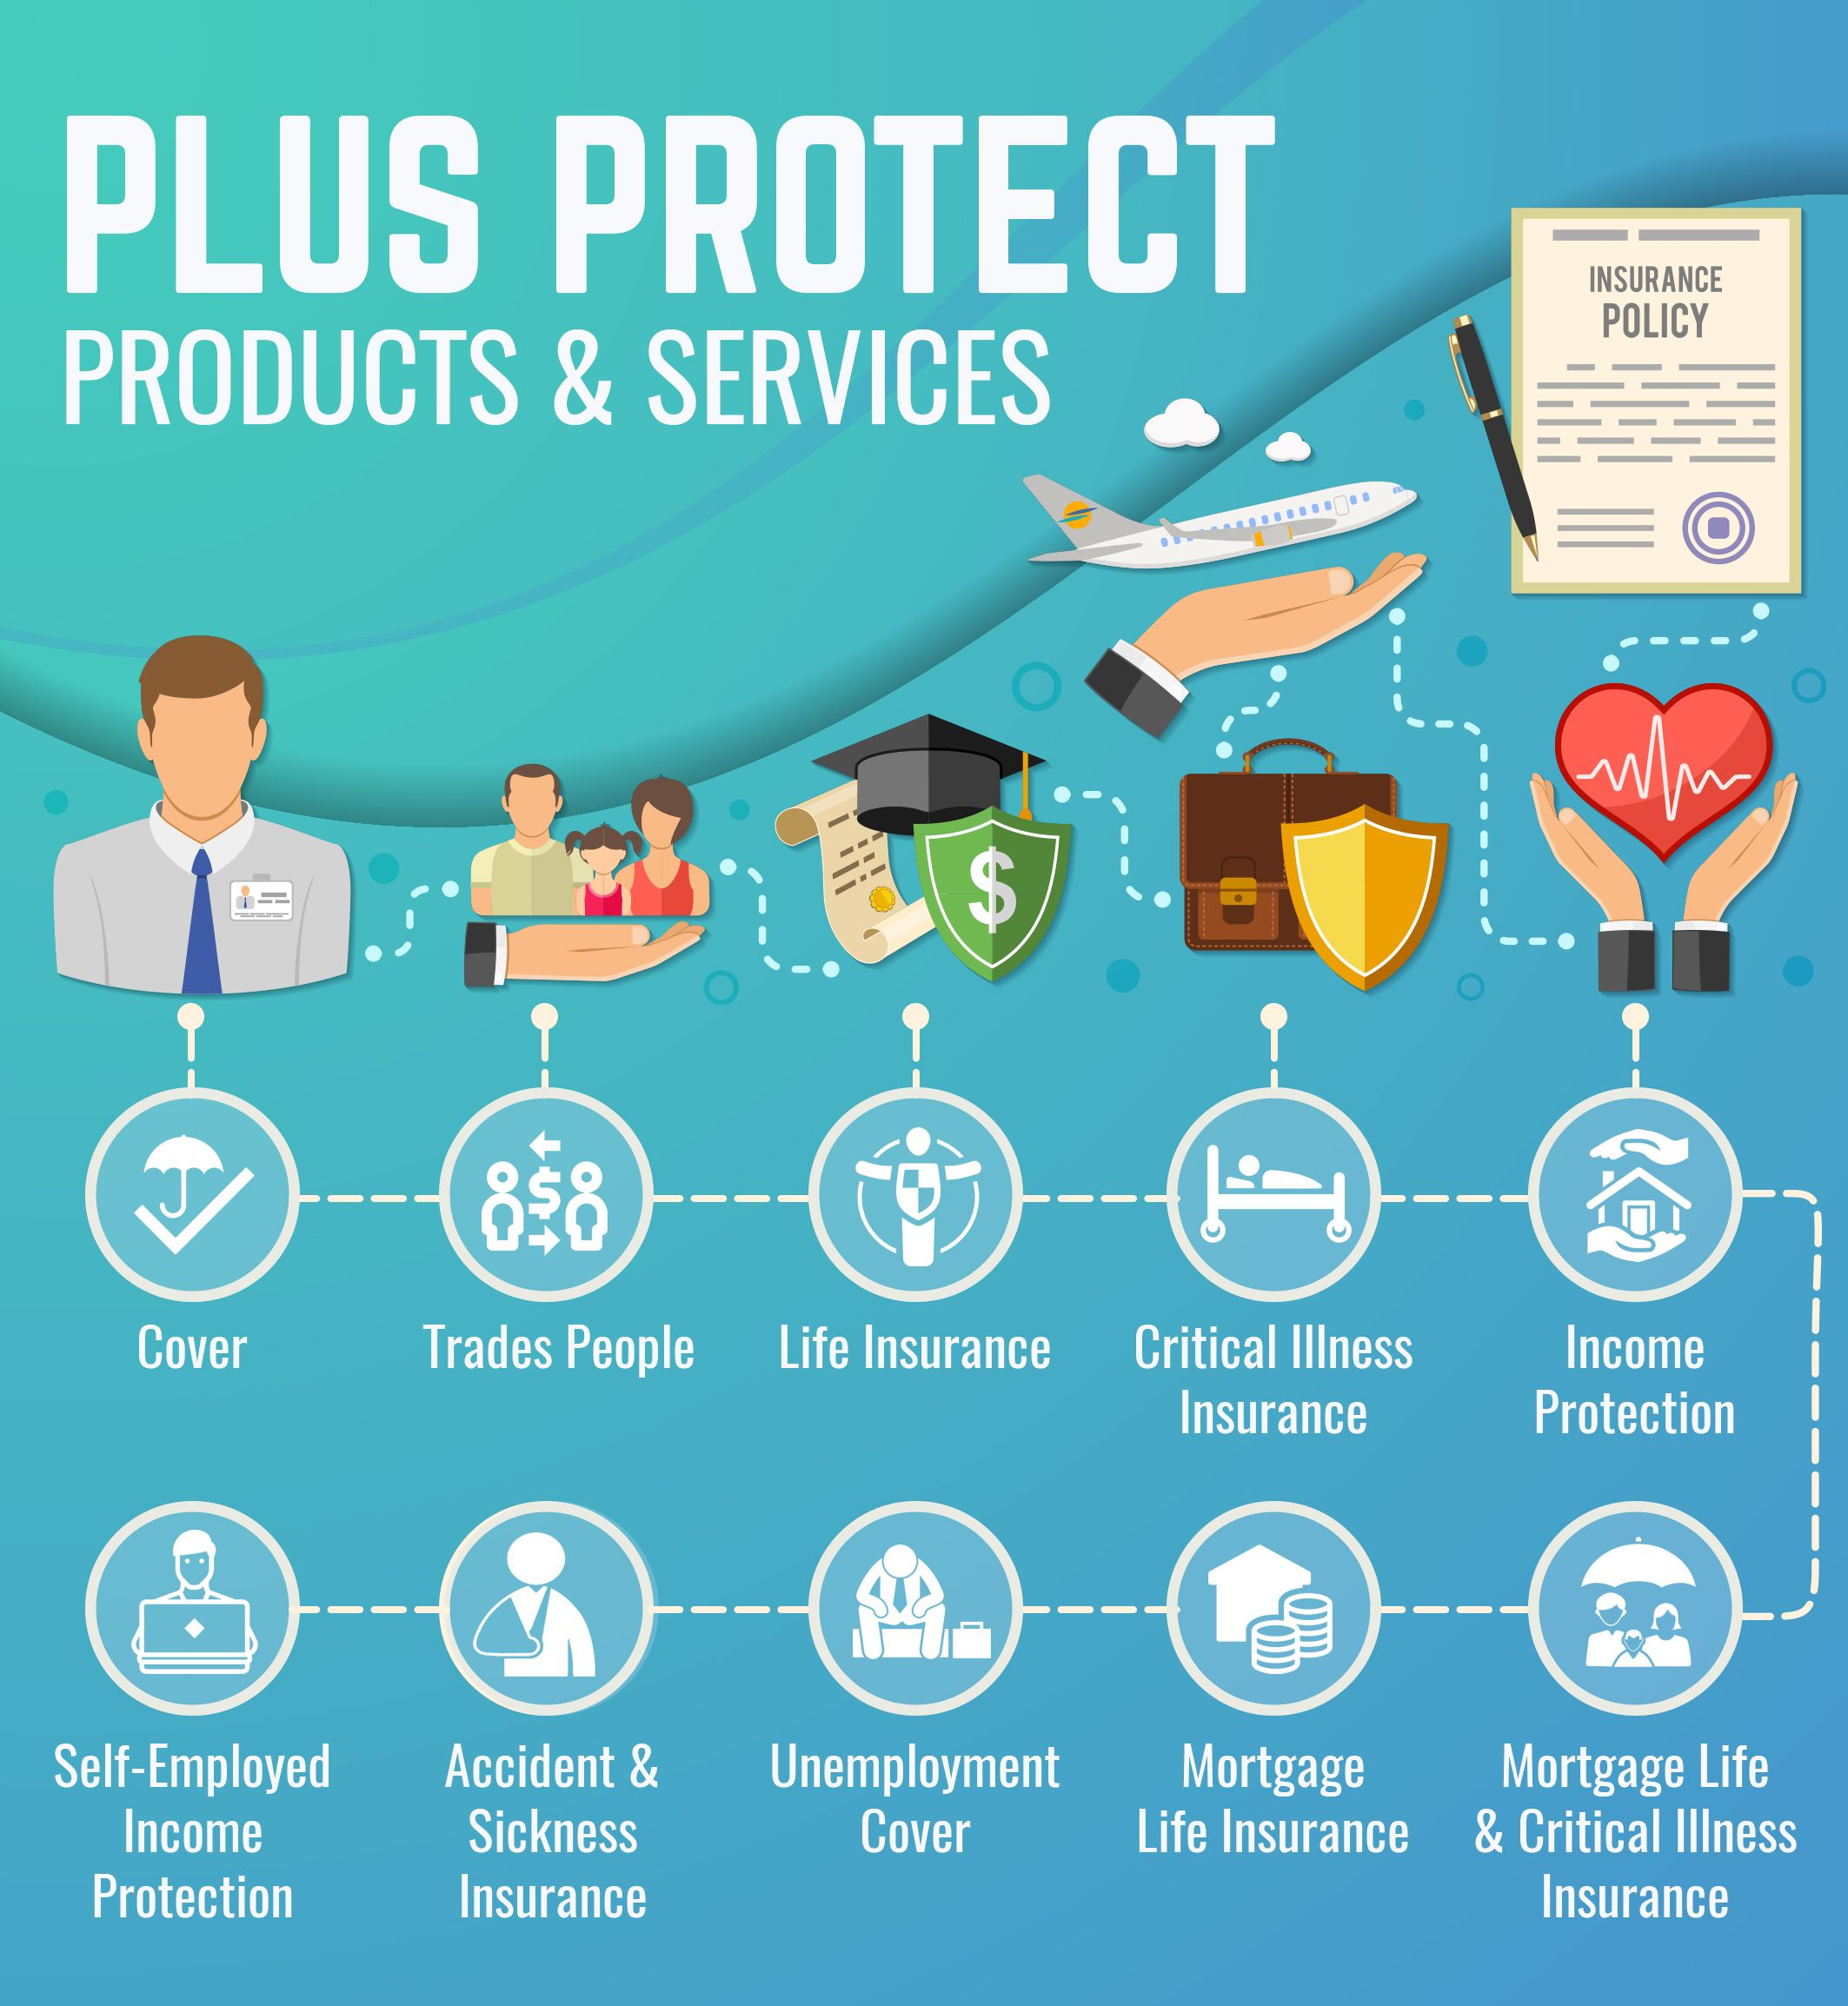 Income Protection Insurance In The Uk Income Protection